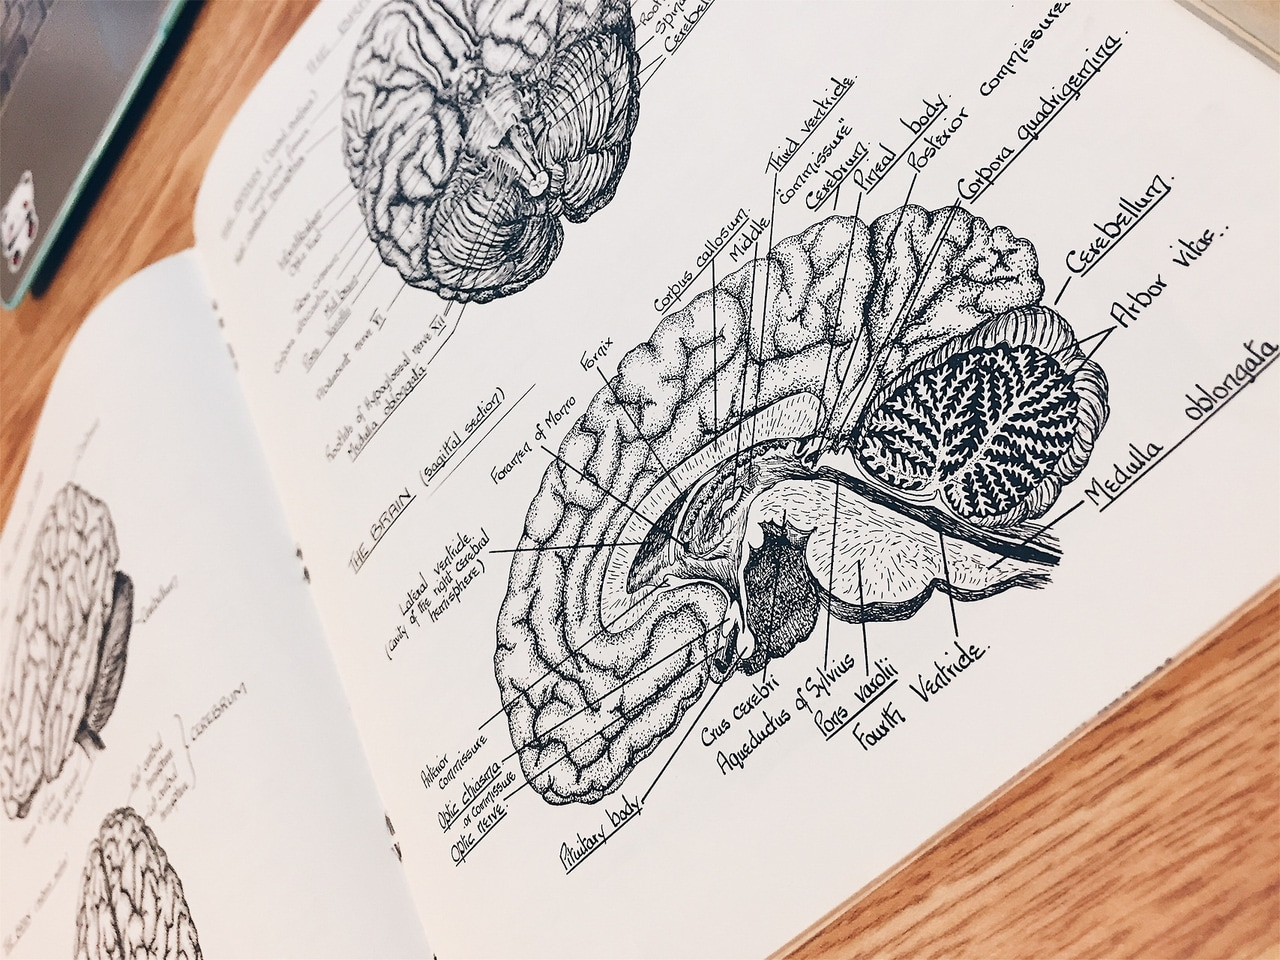 article, brain, and science image